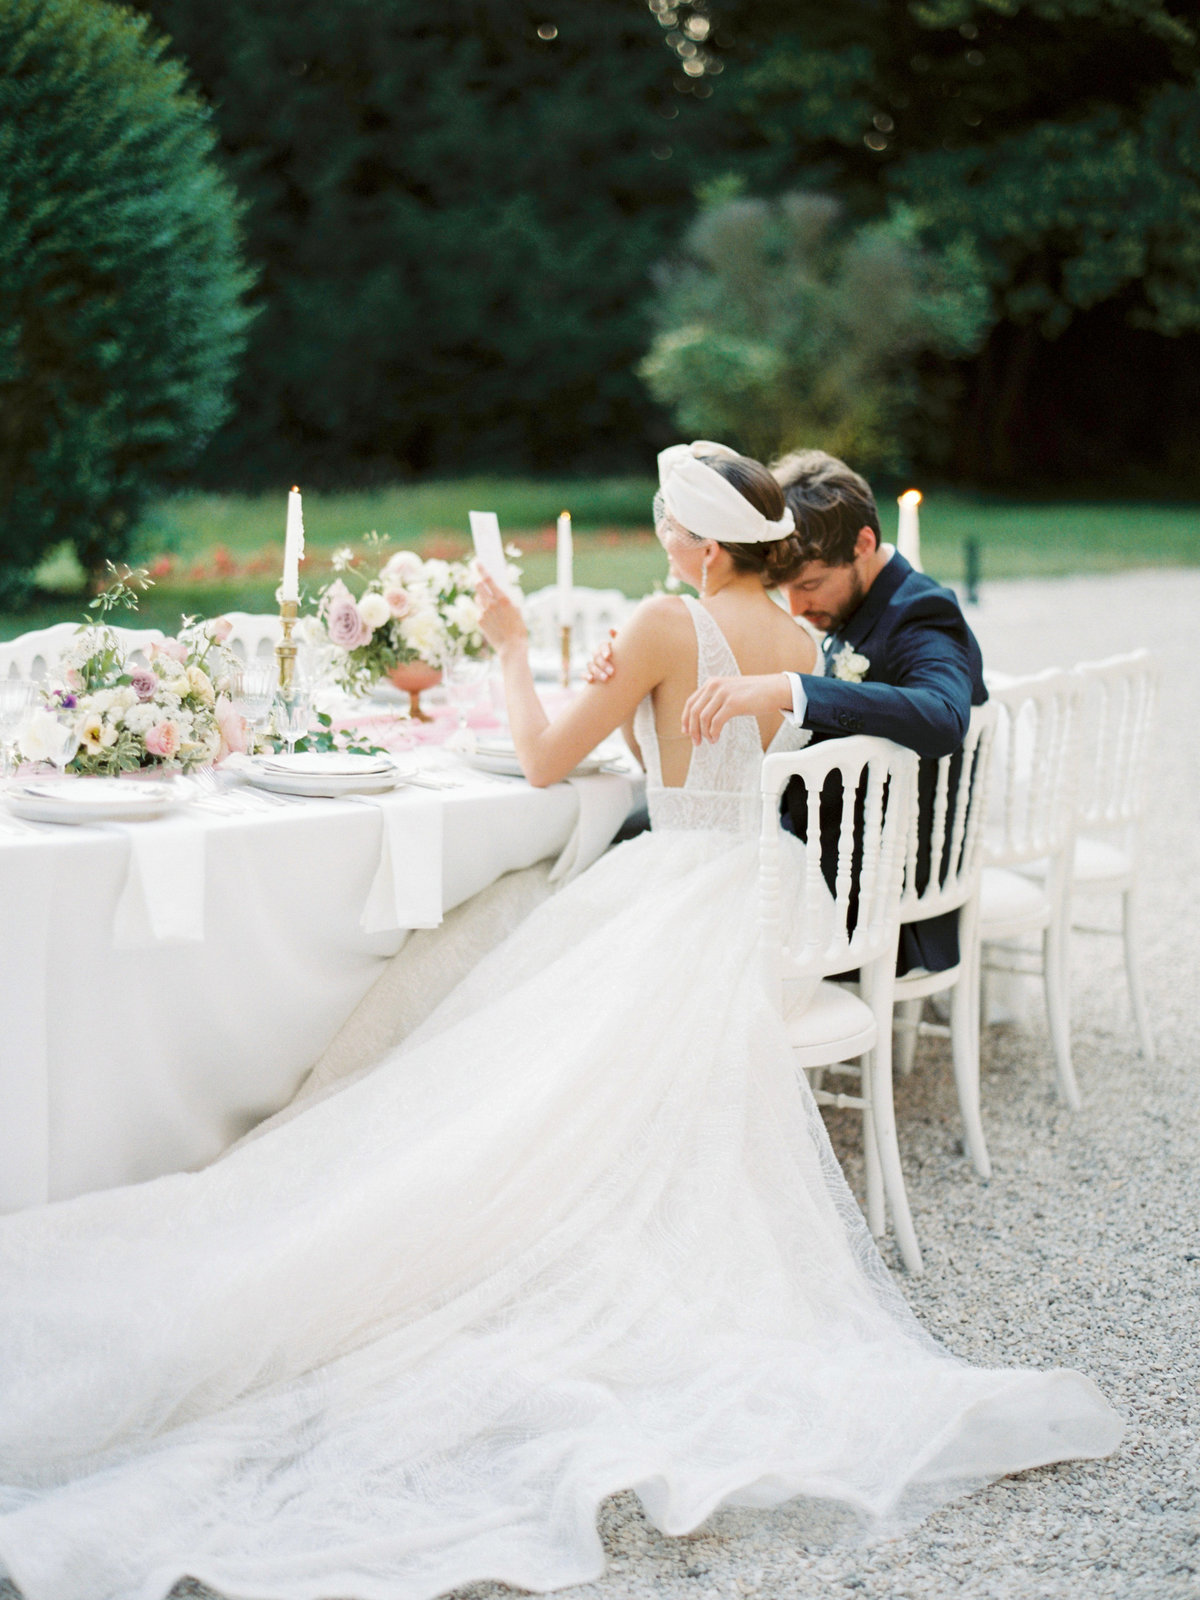 Luxurious french chateau wedding amelia soegijono0054